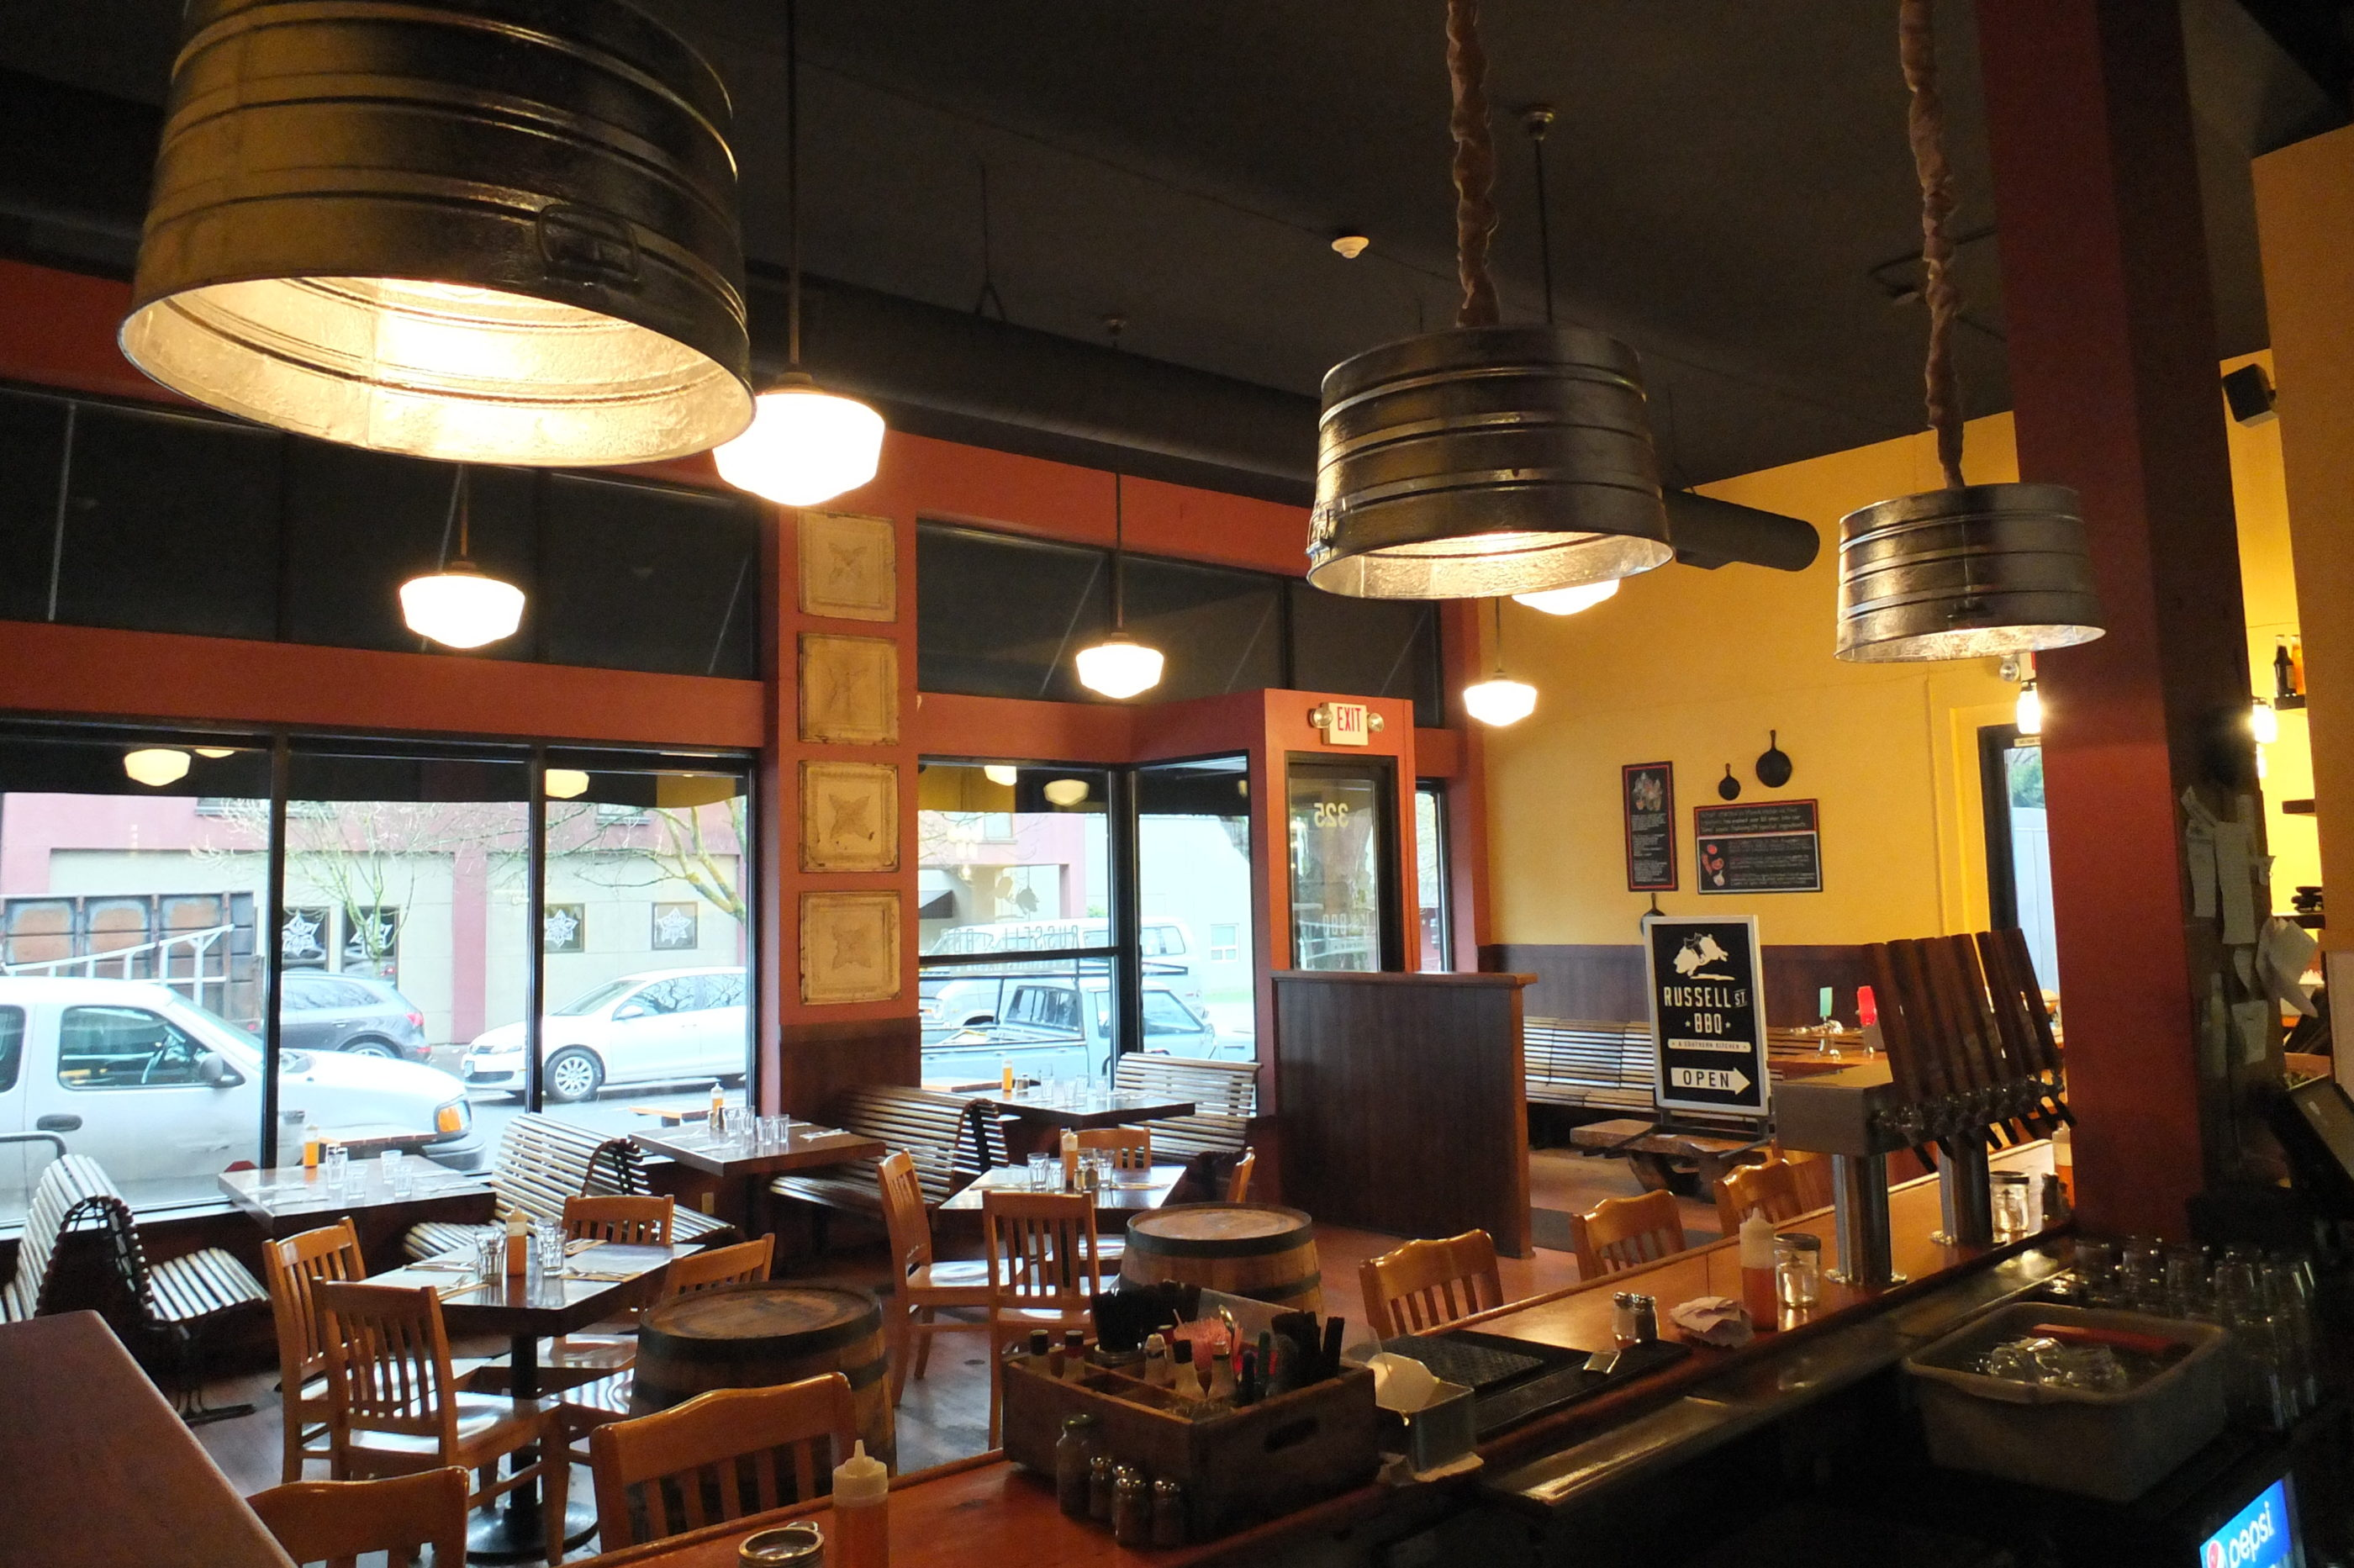 Interior Remodel of Russell St BBQ in Portland